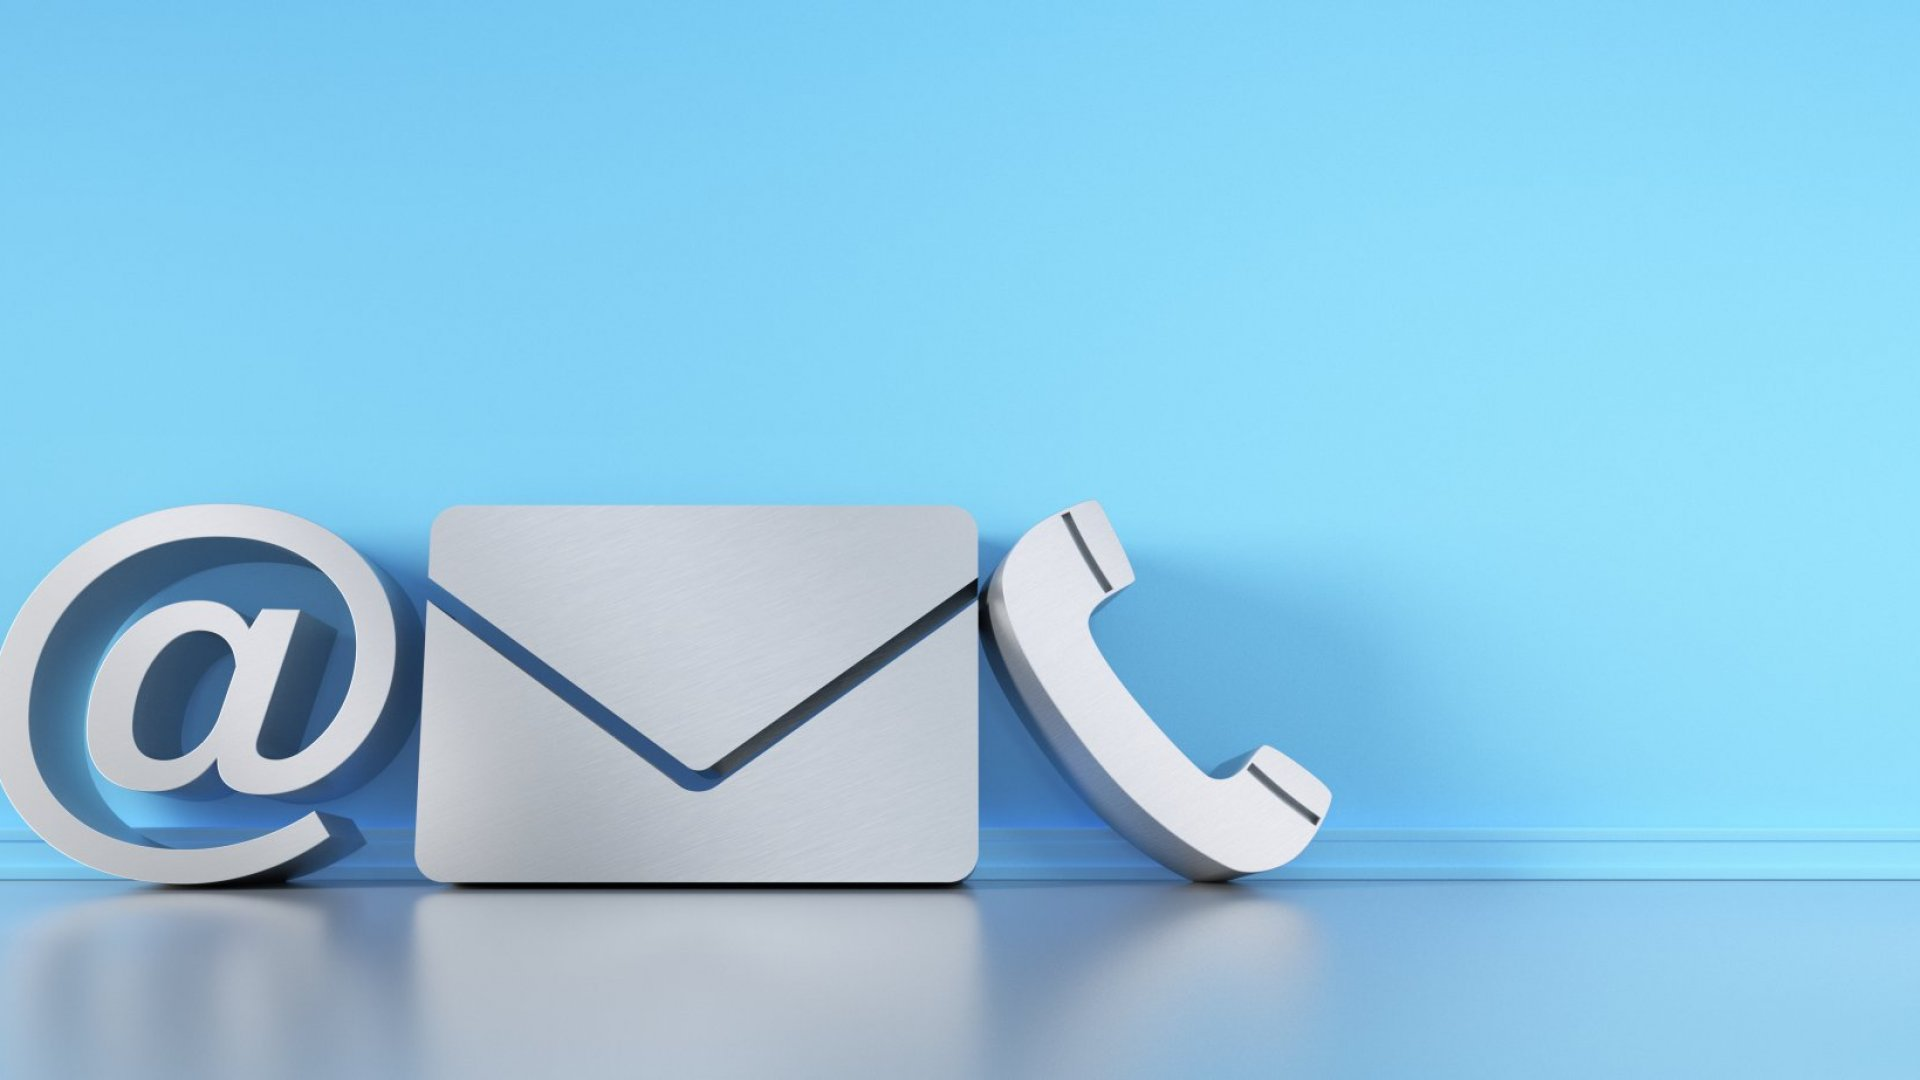 It's Time to Clarify When to Use Email, the Phone, or Messaging Apps to Reach Professional Contacts